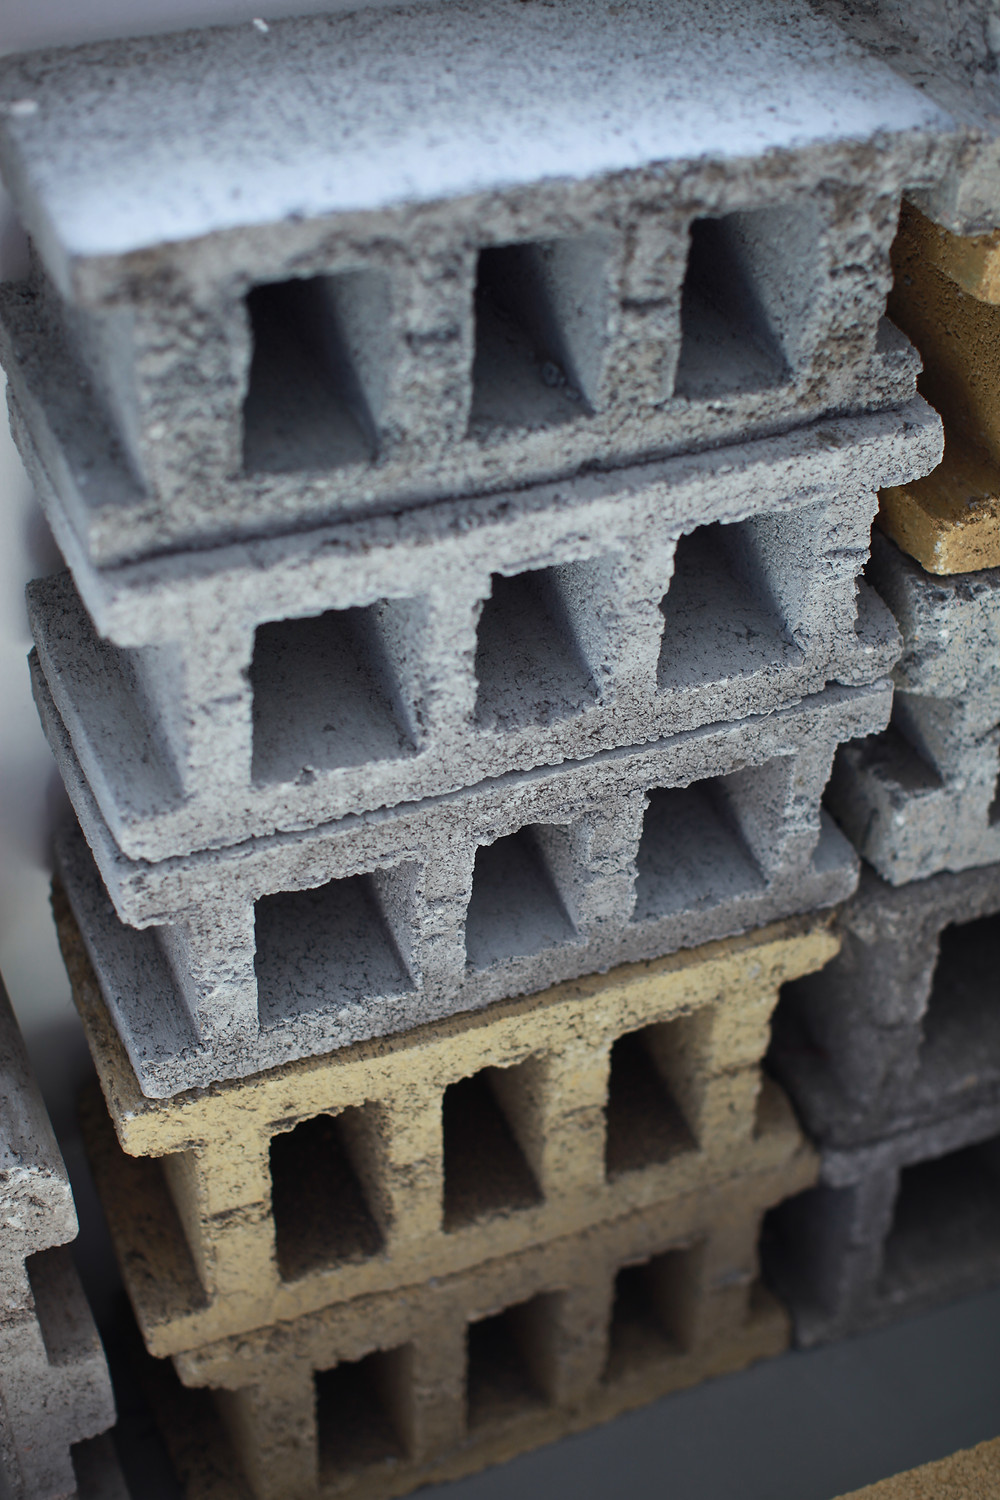 Concrete stretcher blocks made by Doubell block machine